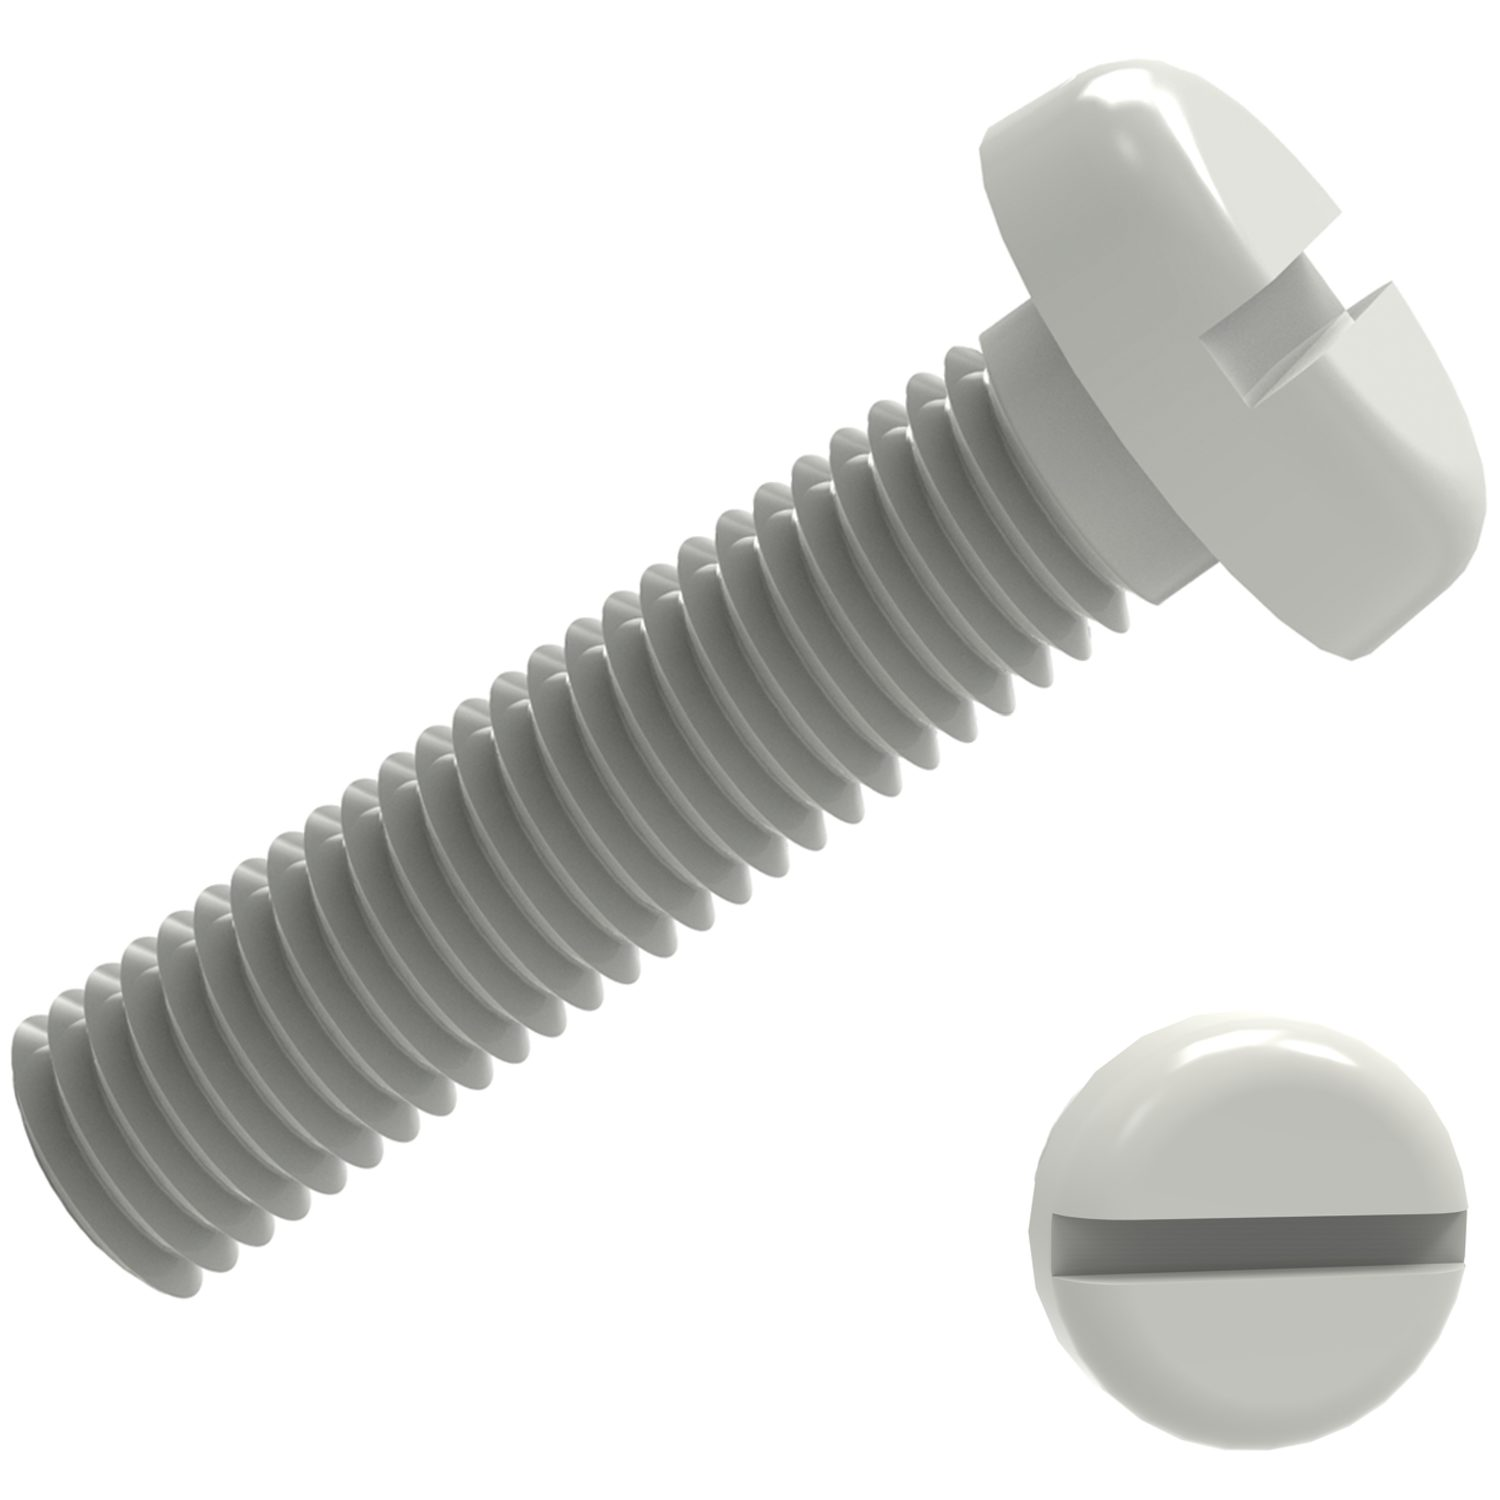 Product P0232.NL, Nylon Slot Pan Head Screws Nylon Slot /